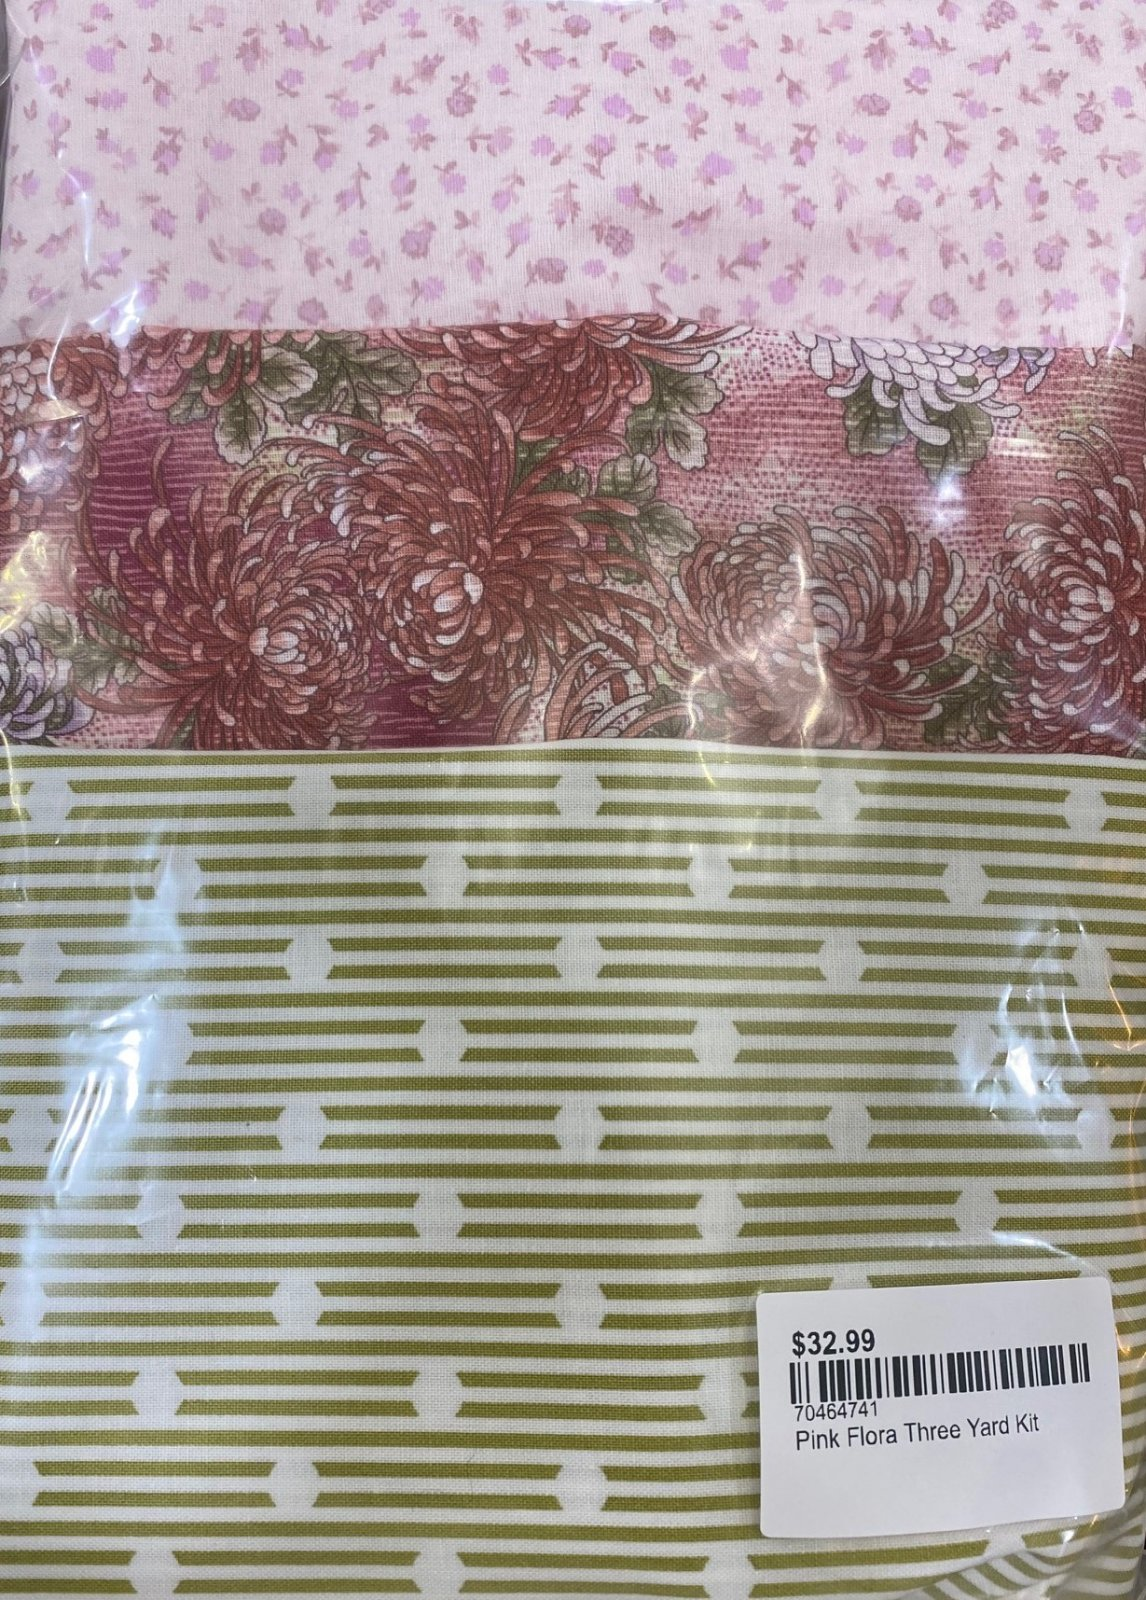 Pink Floral Three Yard Kit